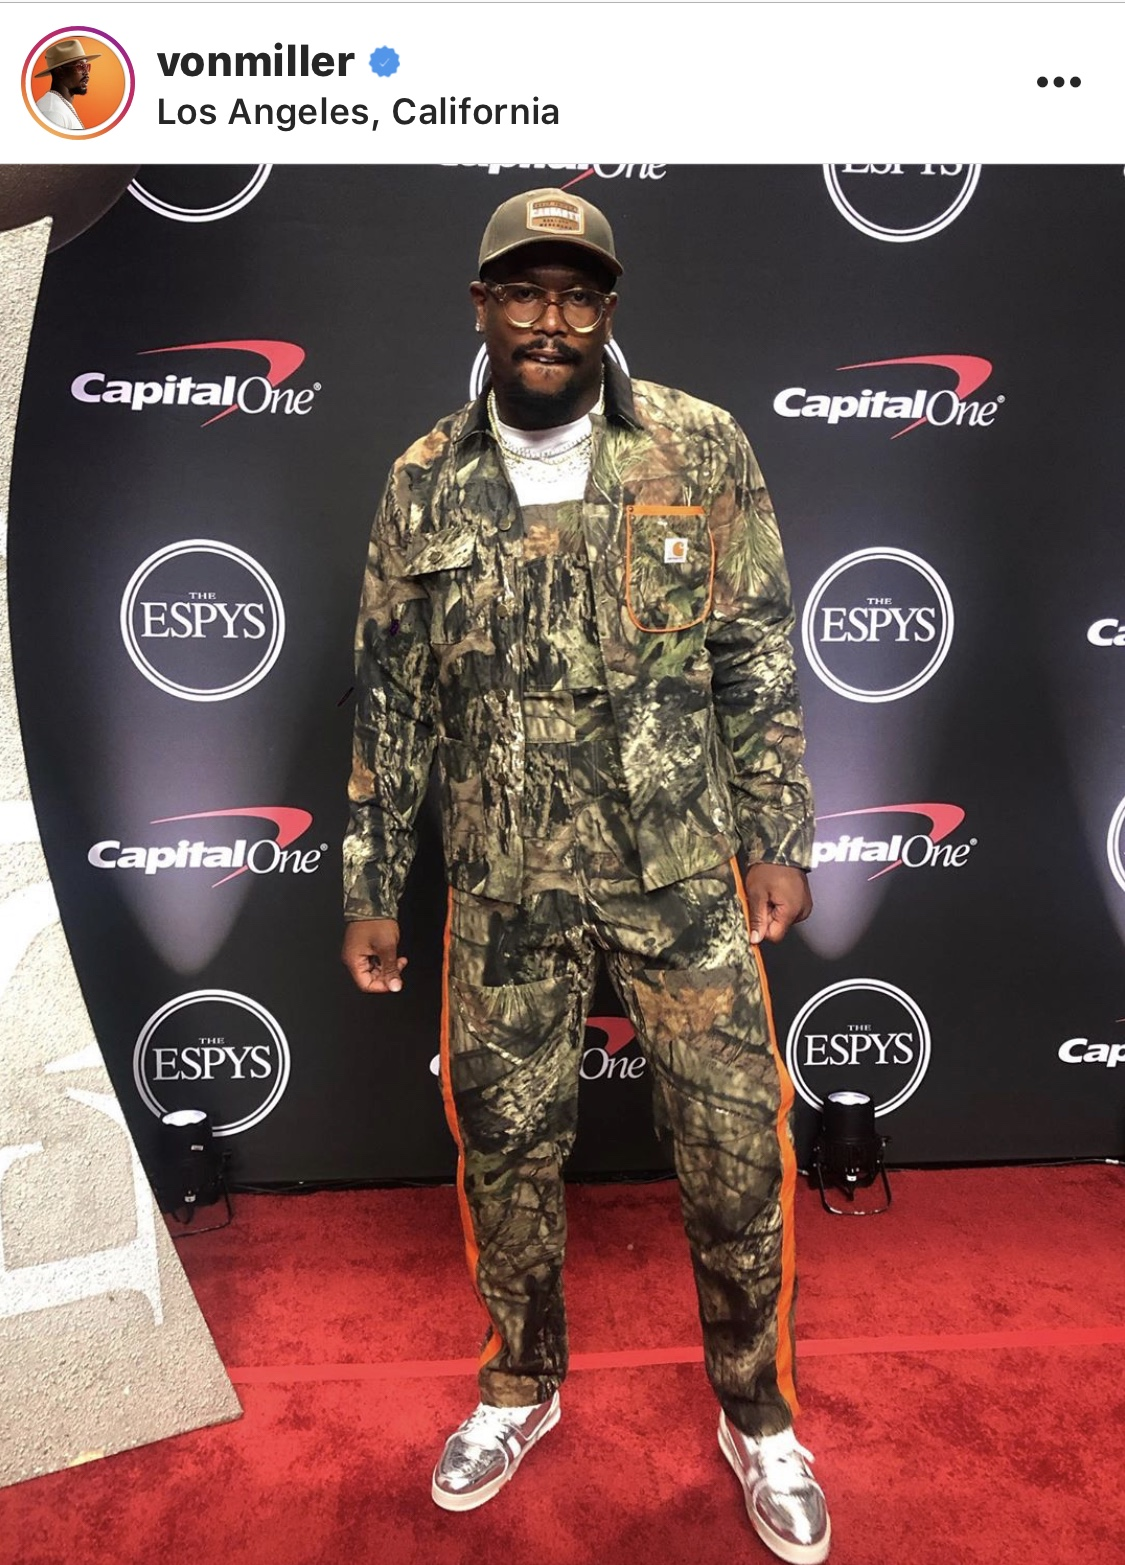 Real Tree Camo fits will always be fire to me when pulled off correctly, and with the Louis Sneakers Von Miller killed it.